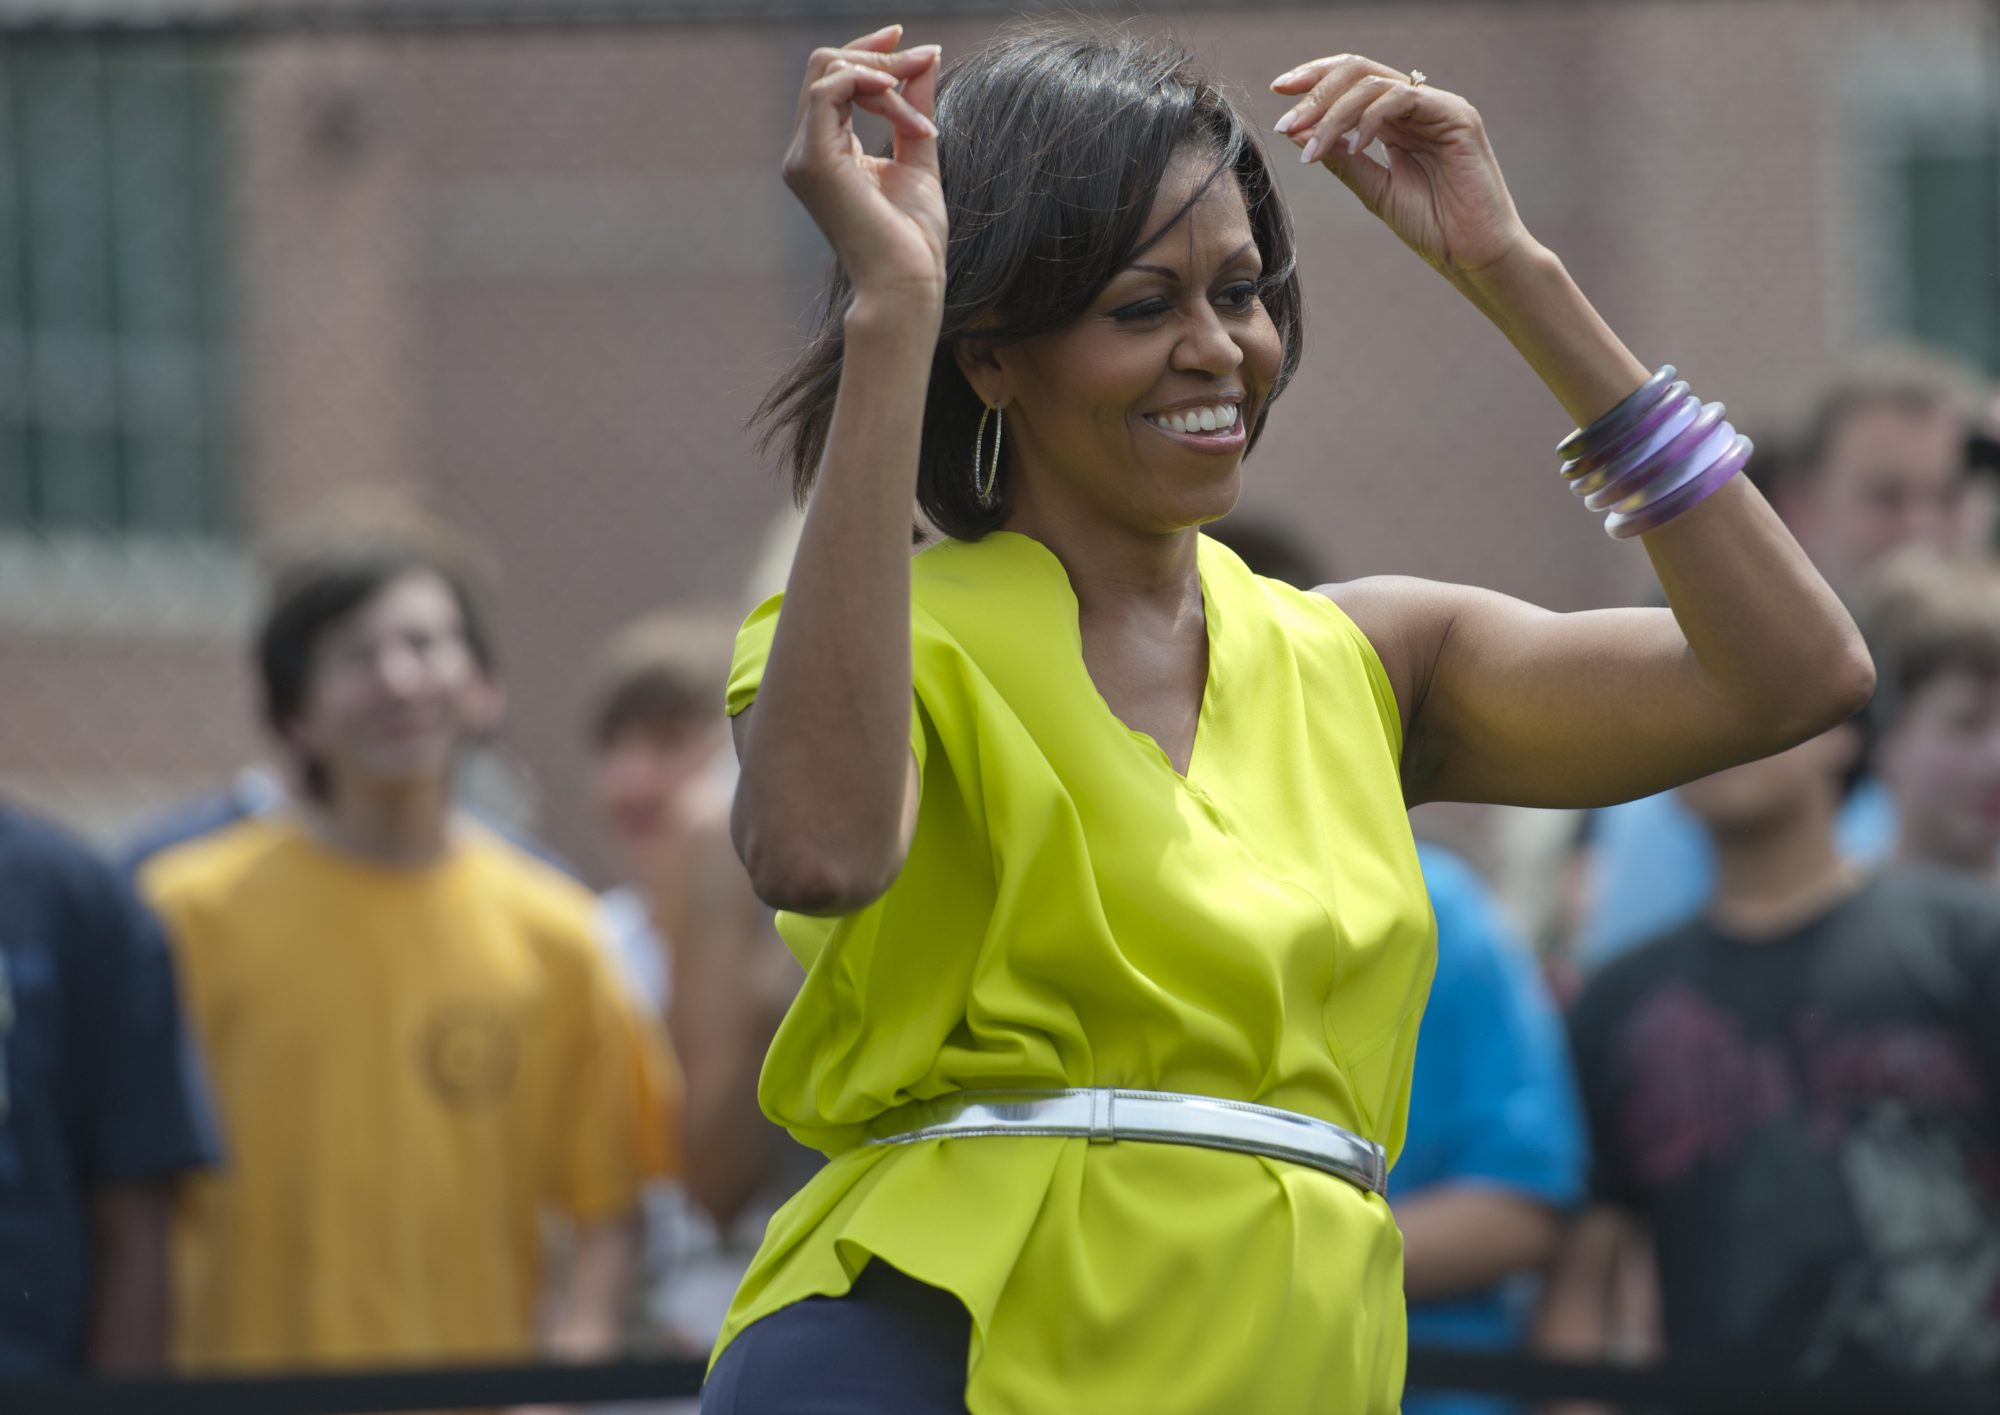 Surprise First Lady Michelle Obama greets the students and teachers of Alice Deal Middle School in Tenleytown, with a suprise visit, where she and the students and teachers participated in the 'Let's Move! Flash Workout.'A pre-choreographed dance routine